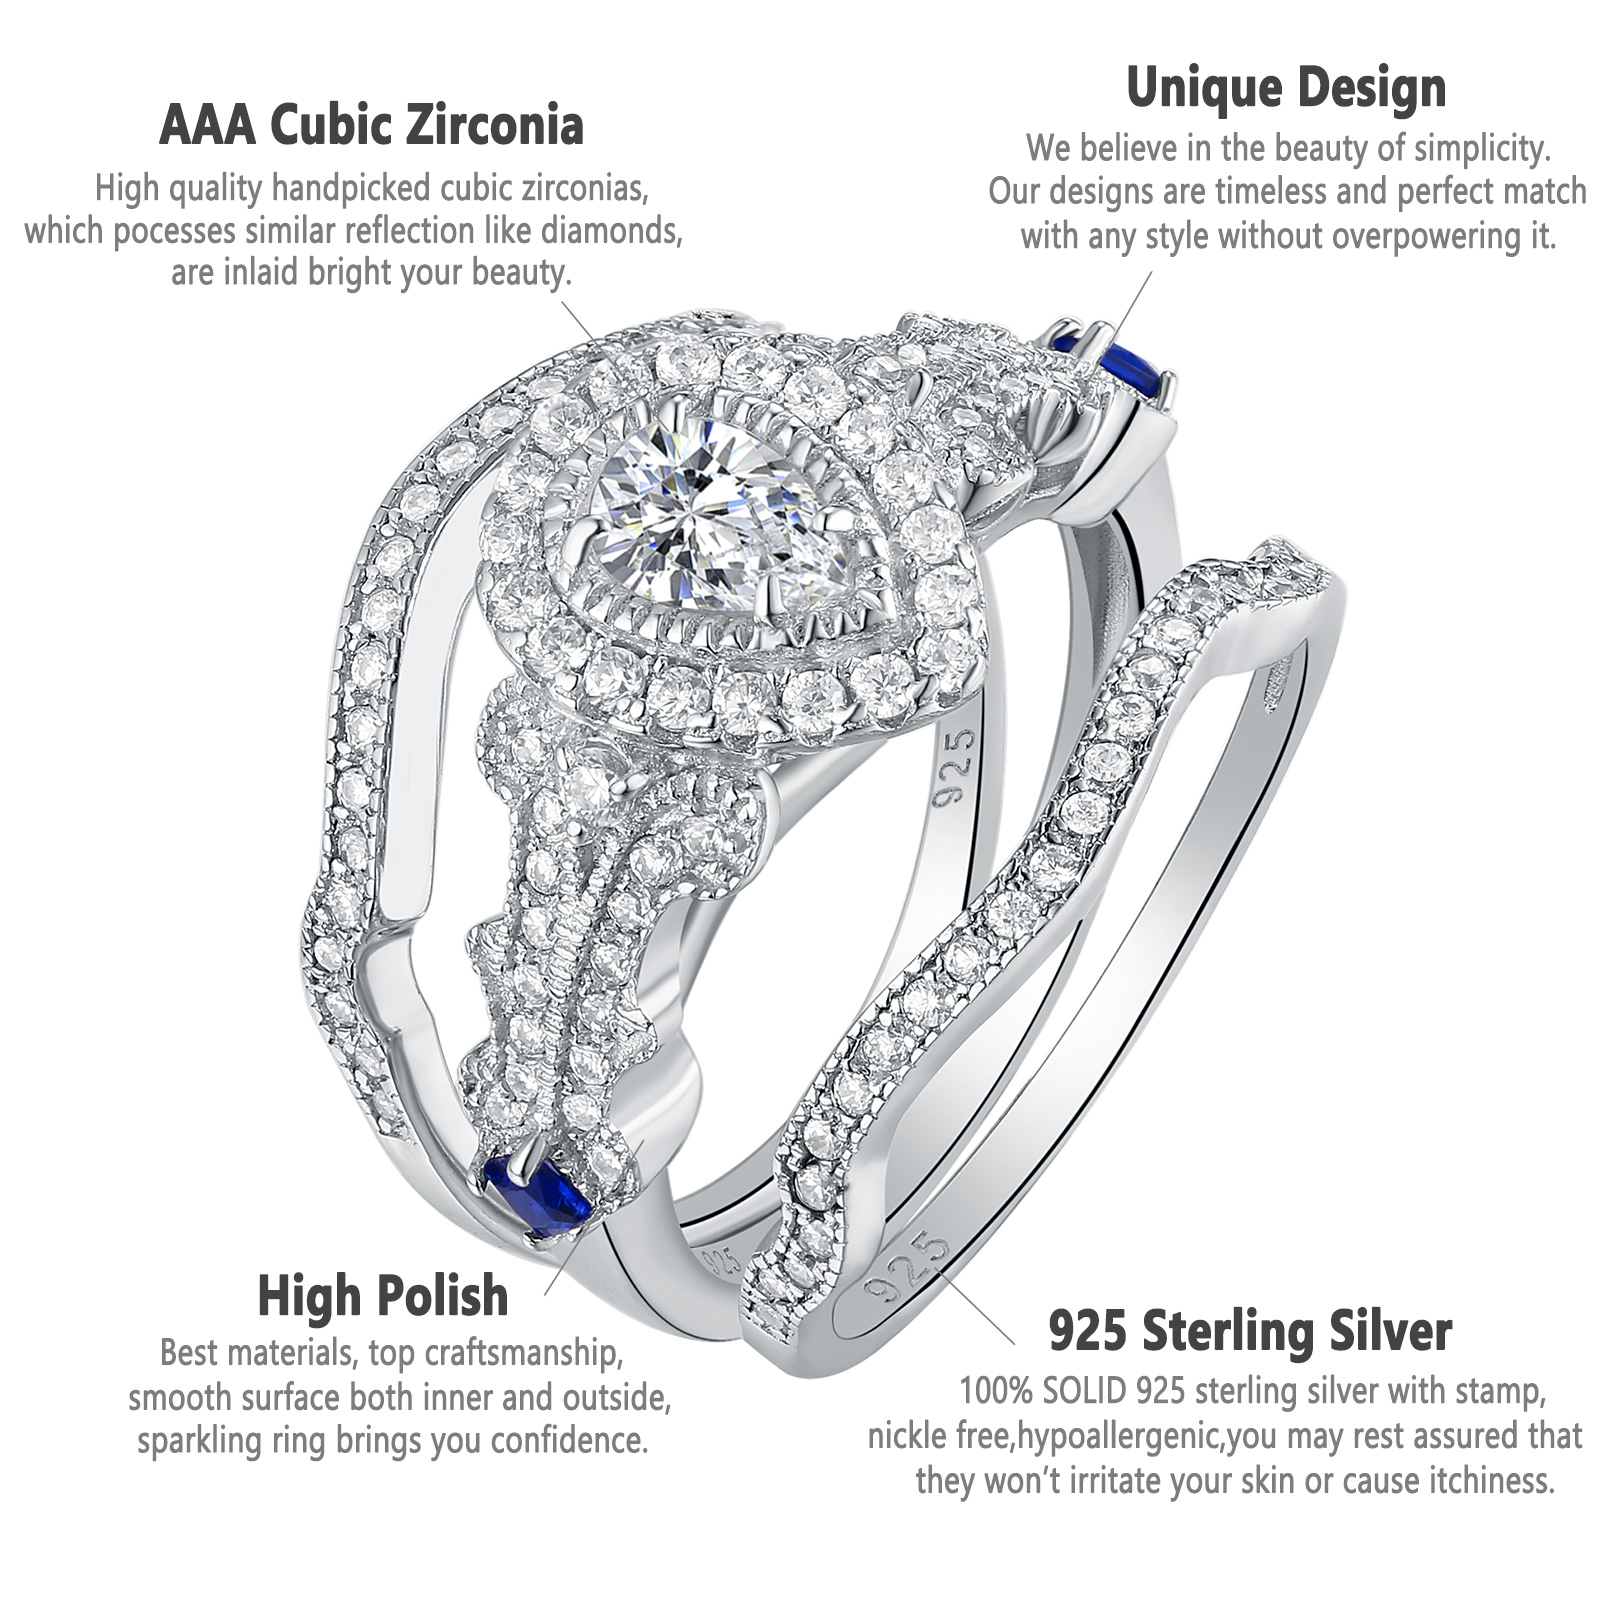 Diamond Unique Design Diamond Engagement Ring Solid 925 Sterling Silver Wedding Jewelry Jewelry & Watches